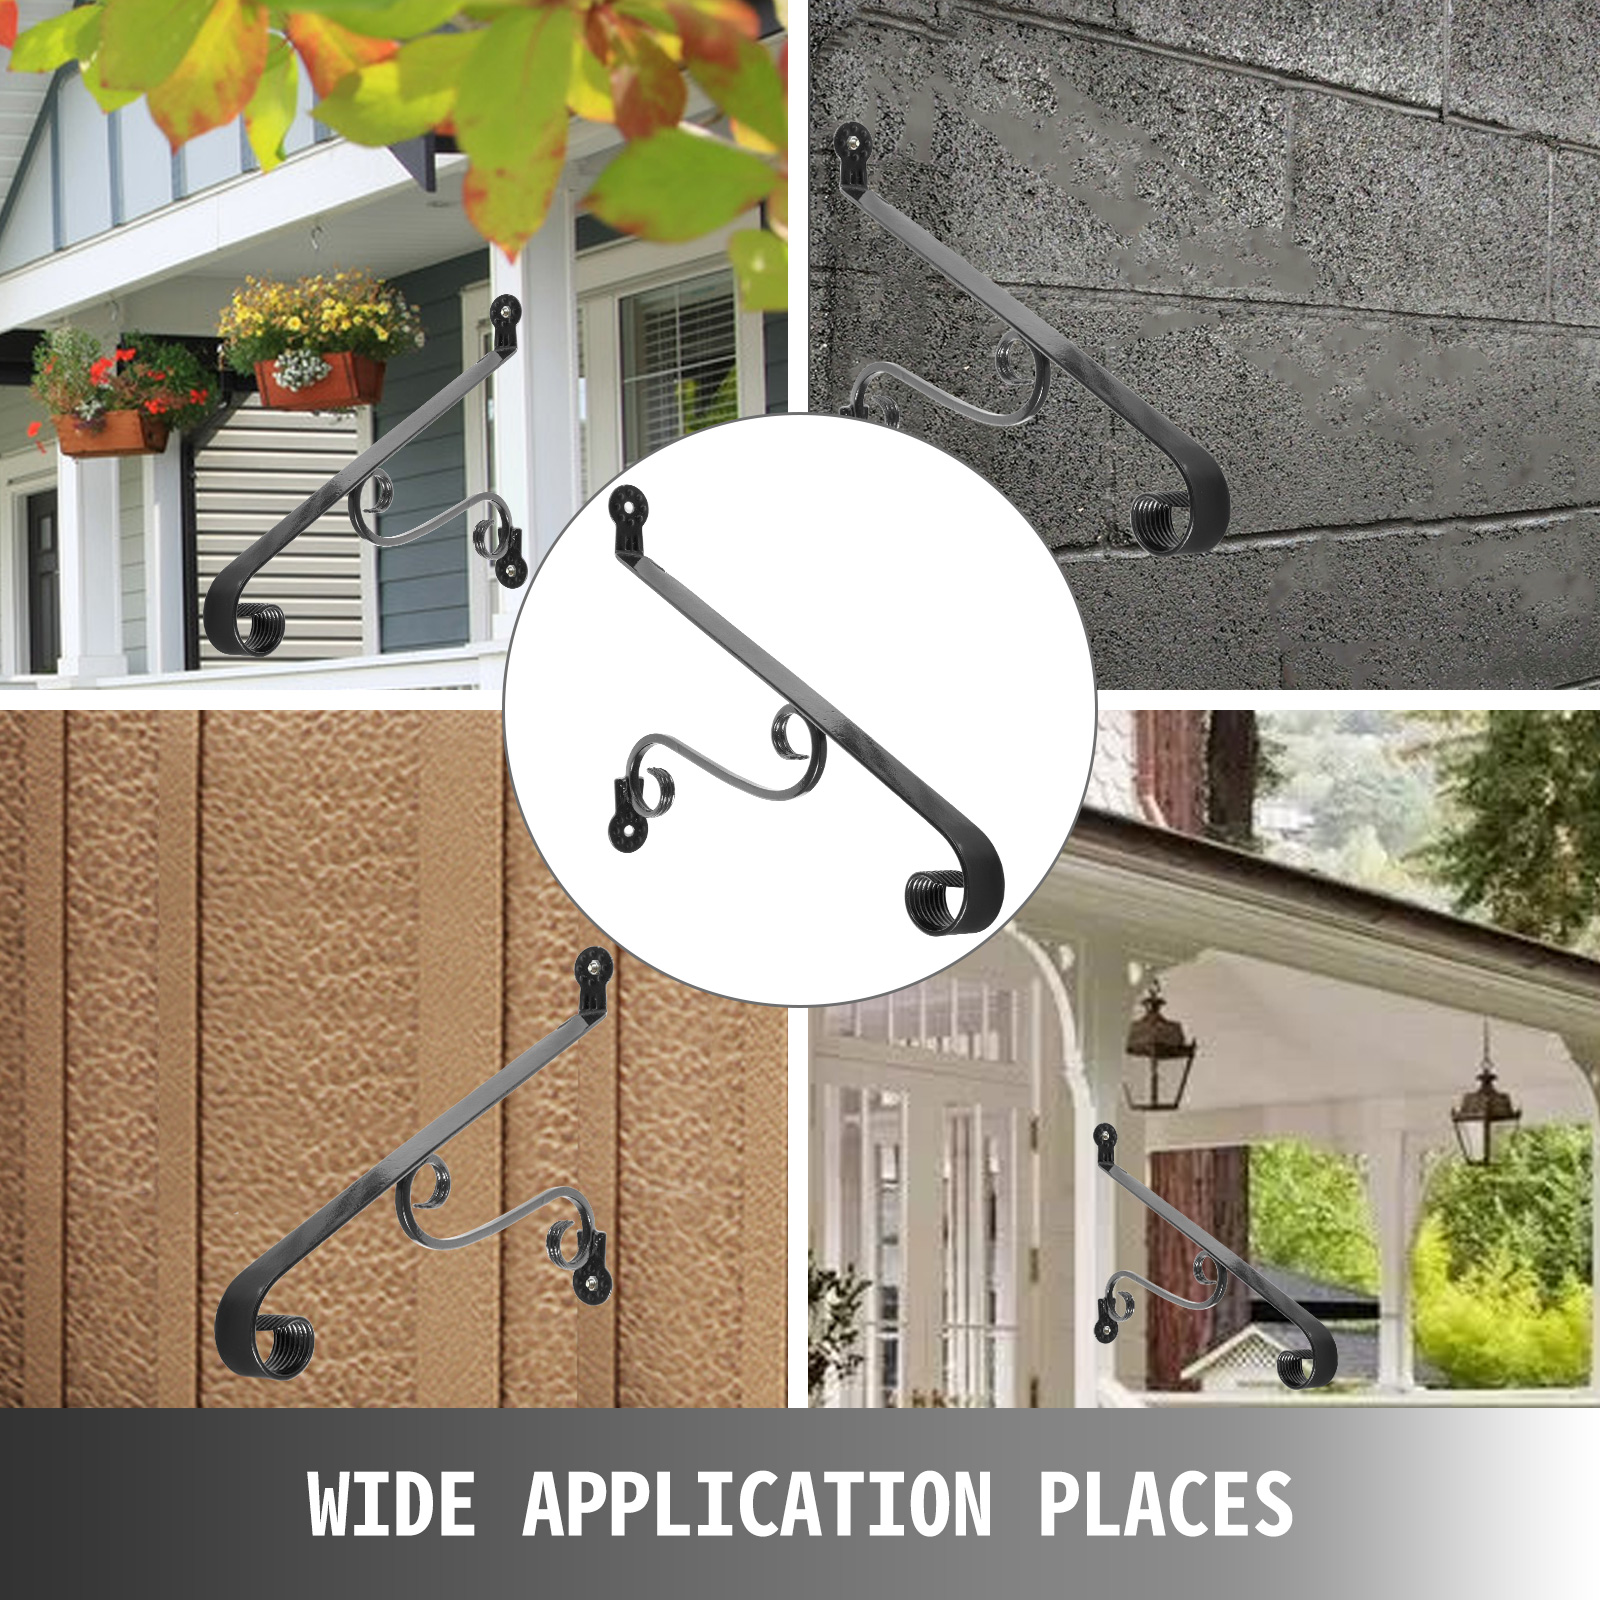 Handrails-for-Outdoor-Step-Wrought-Iron-Handrail-20-034-Length-Porch-Deck-Railing thumbnail 139